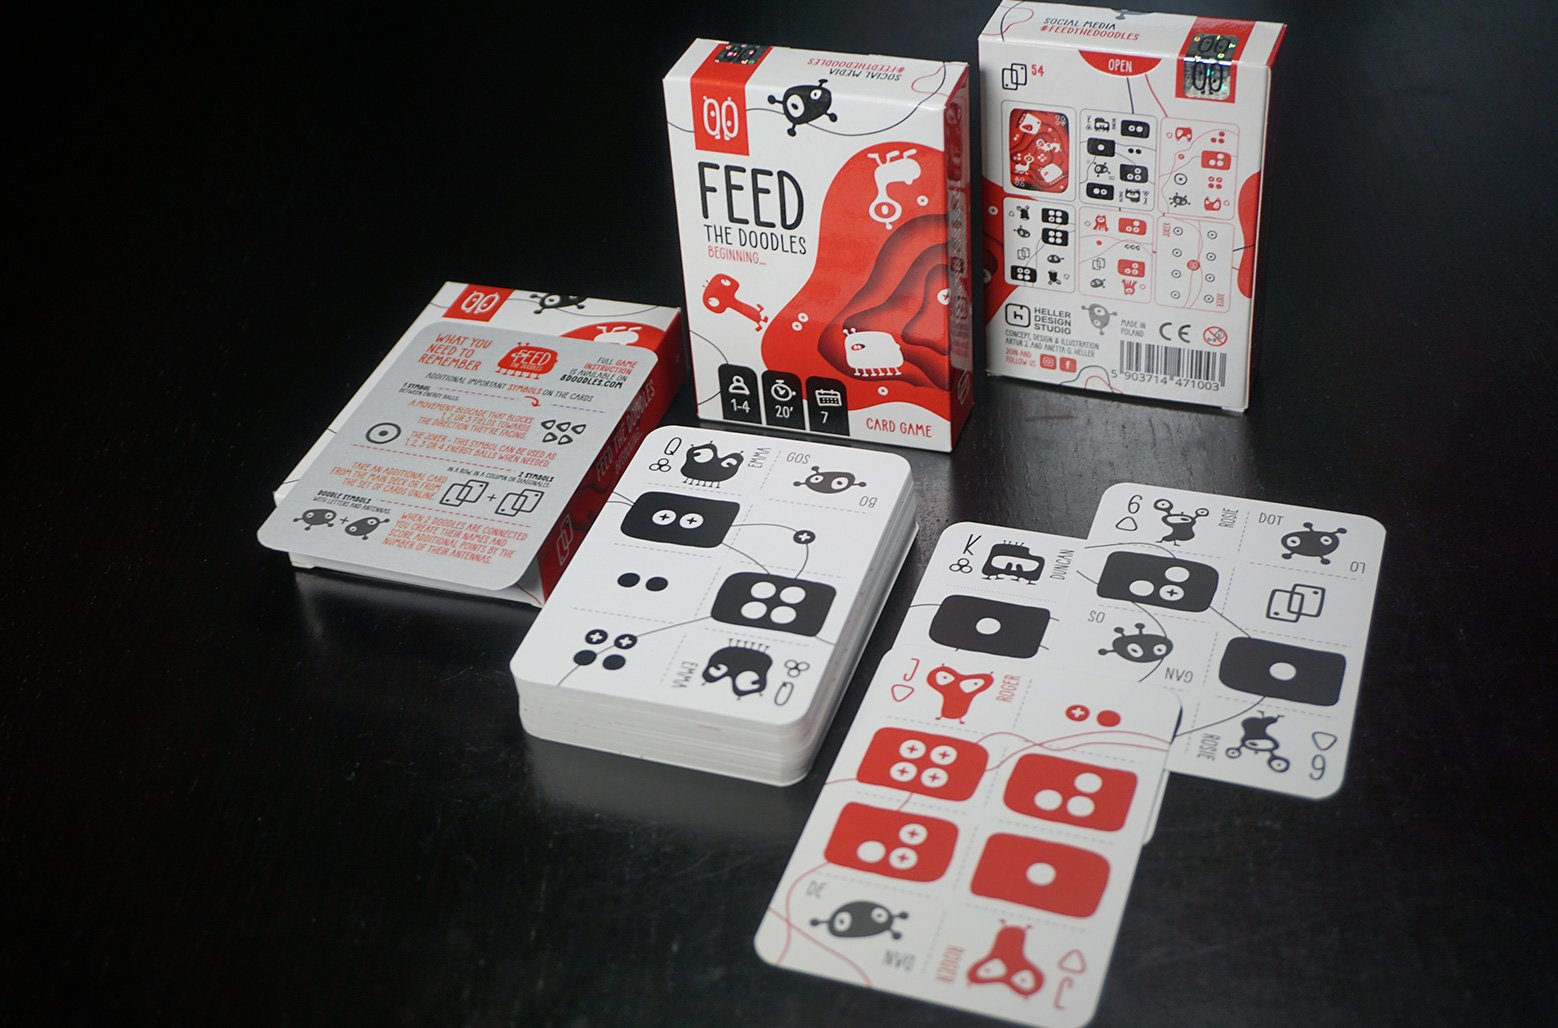 info-box-card-game-feed-the-doodles-red-box-1